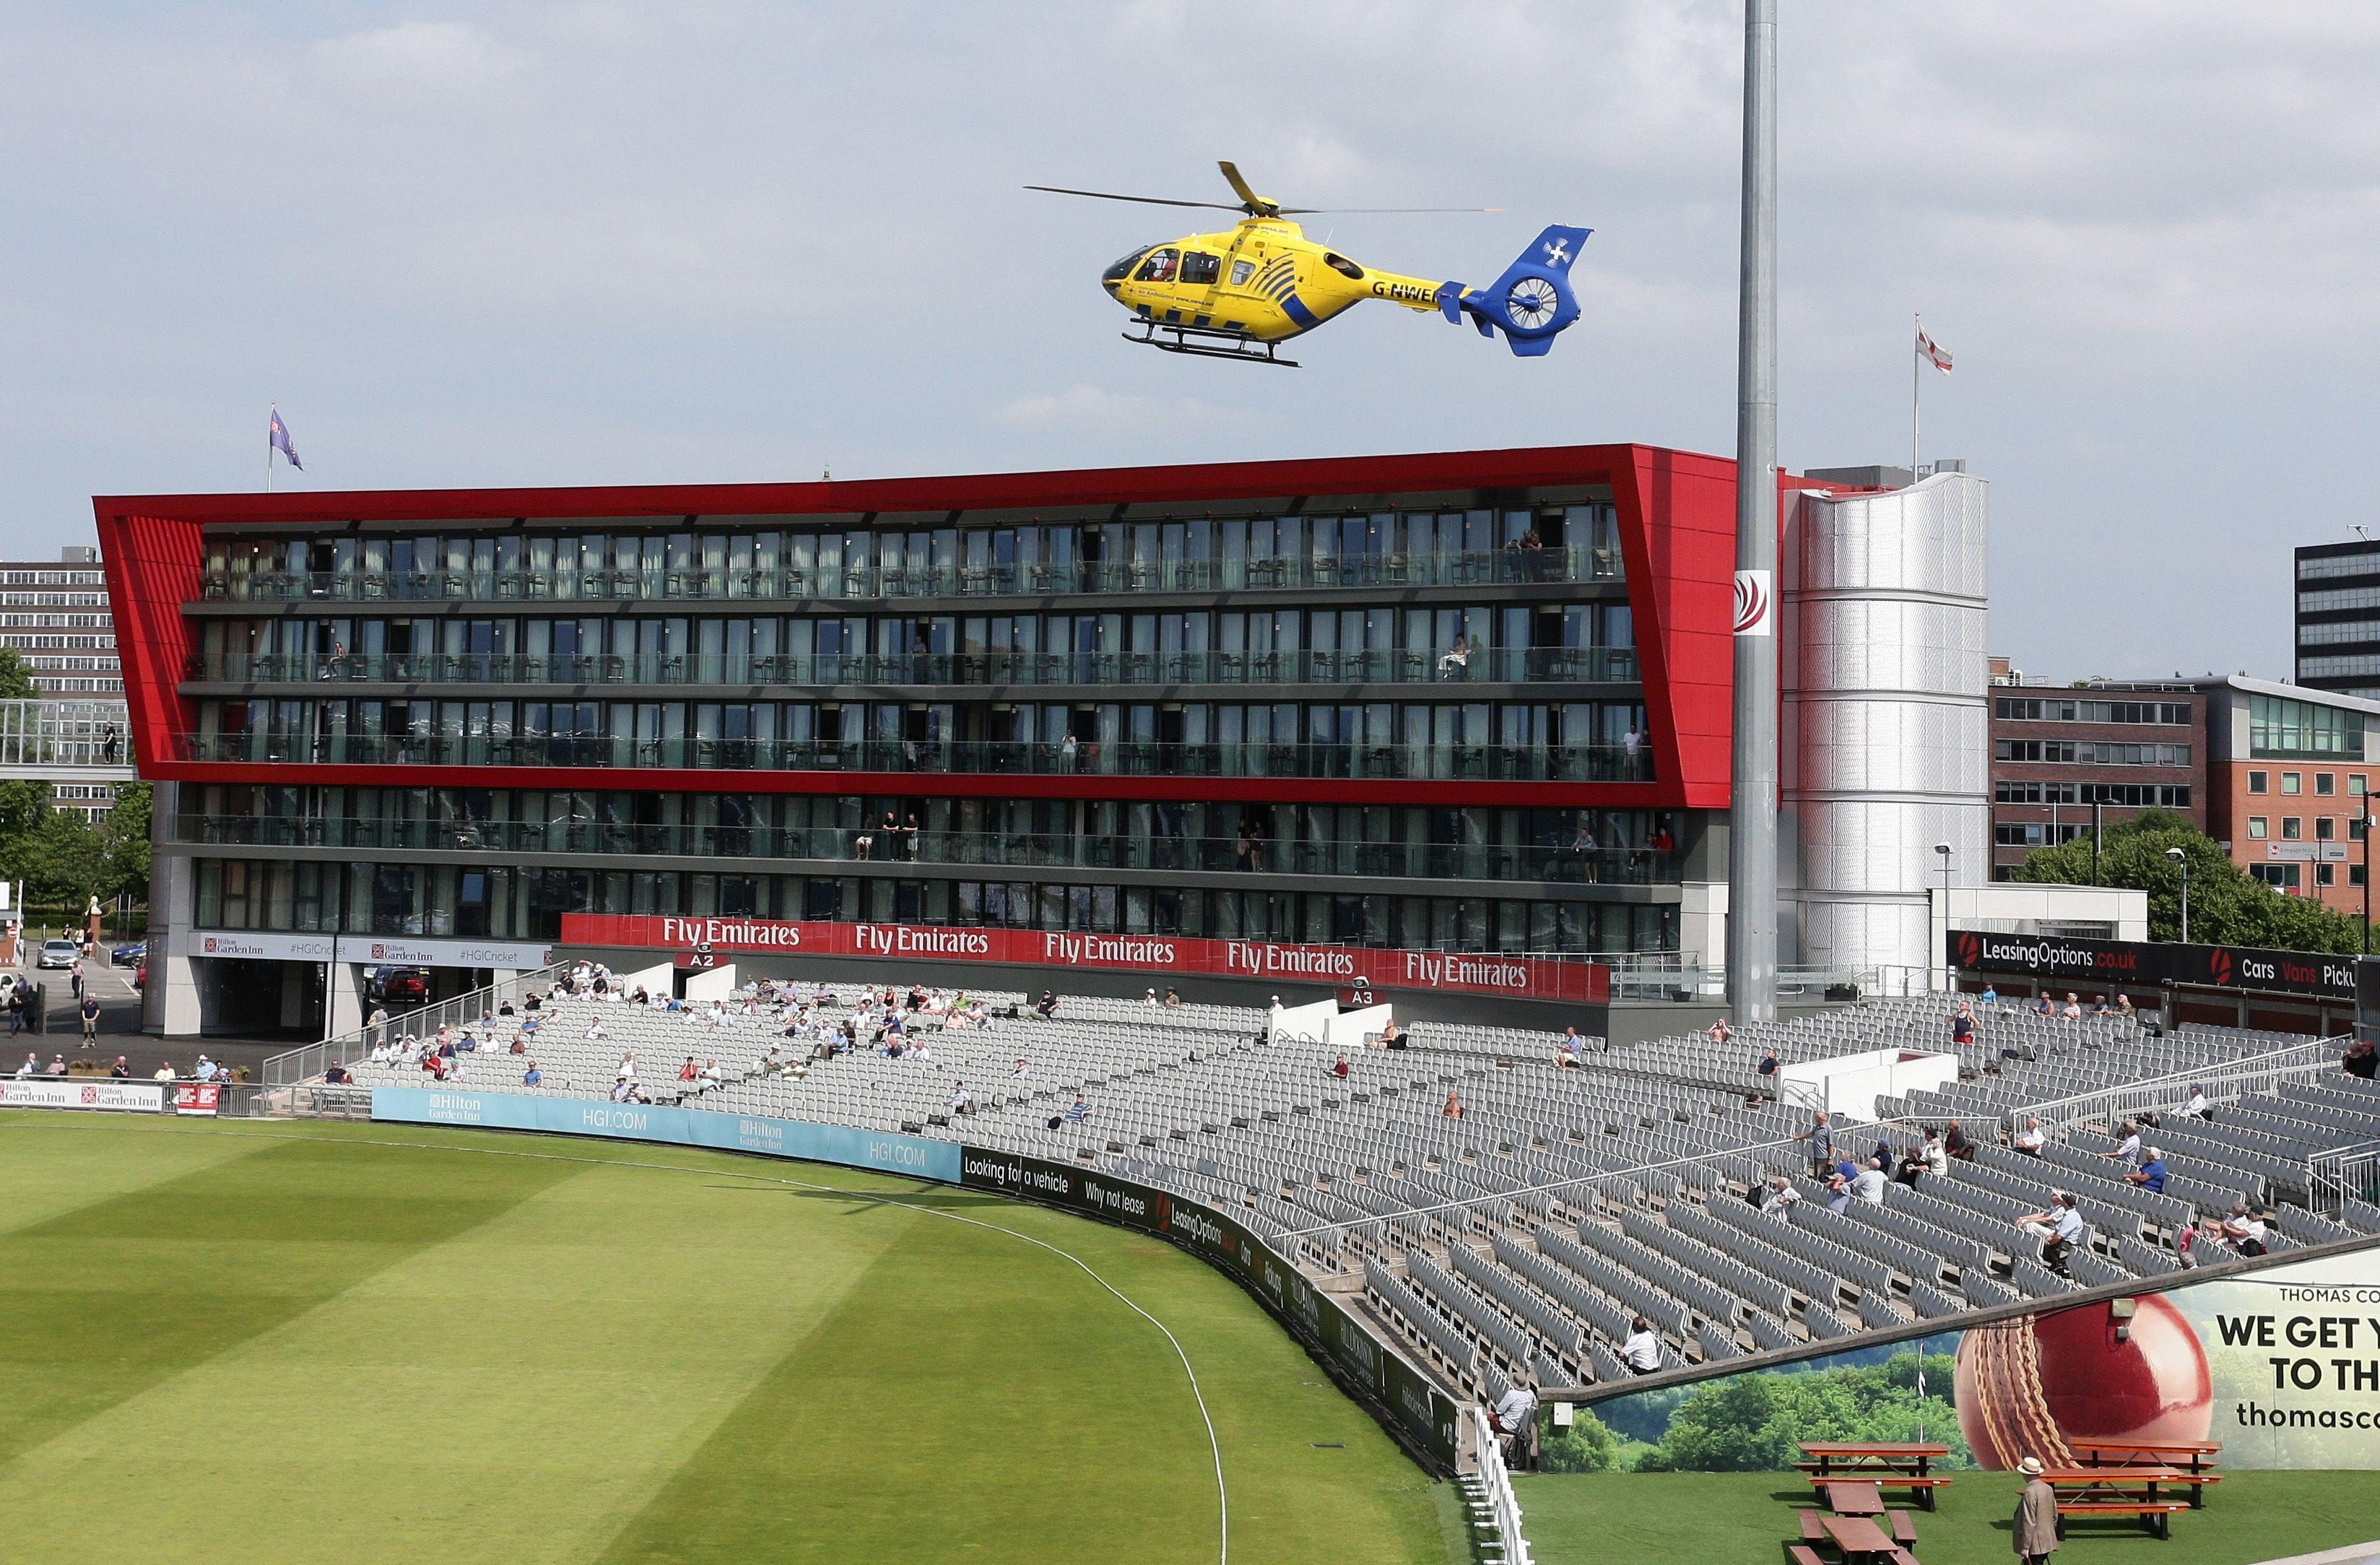 The air ambulance flew over the ground and landed on the pitch